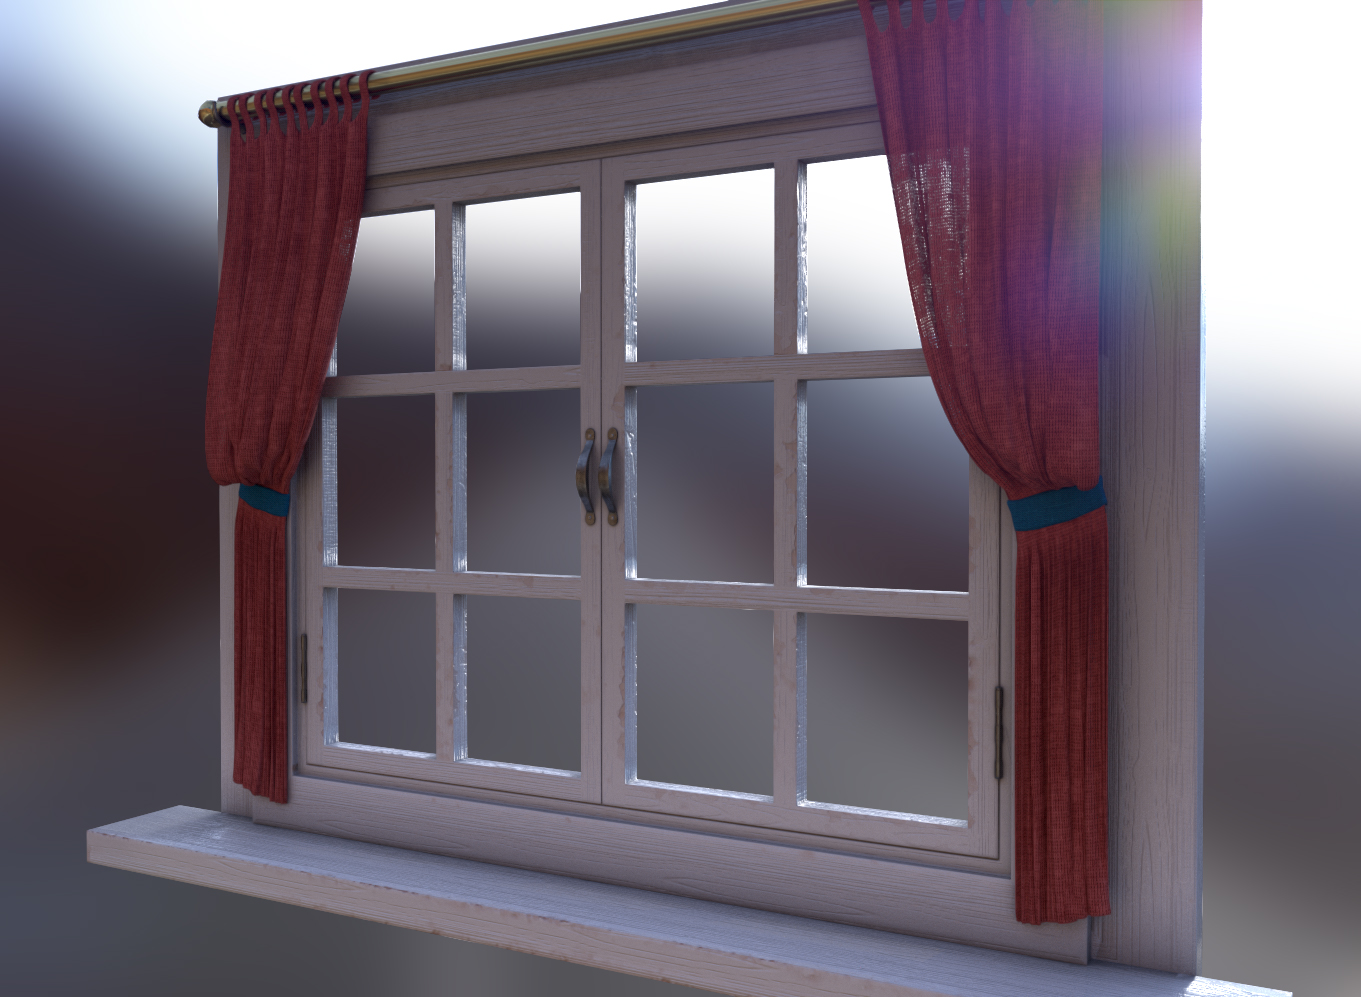 This is a window I created for an upcoming real time PBR Scene, which I will create a more meaningful breakdown of in a future post. Here we can see a nice opacity map at work on the fabric, giving it some translucency. Rendered in SD6 IRay.